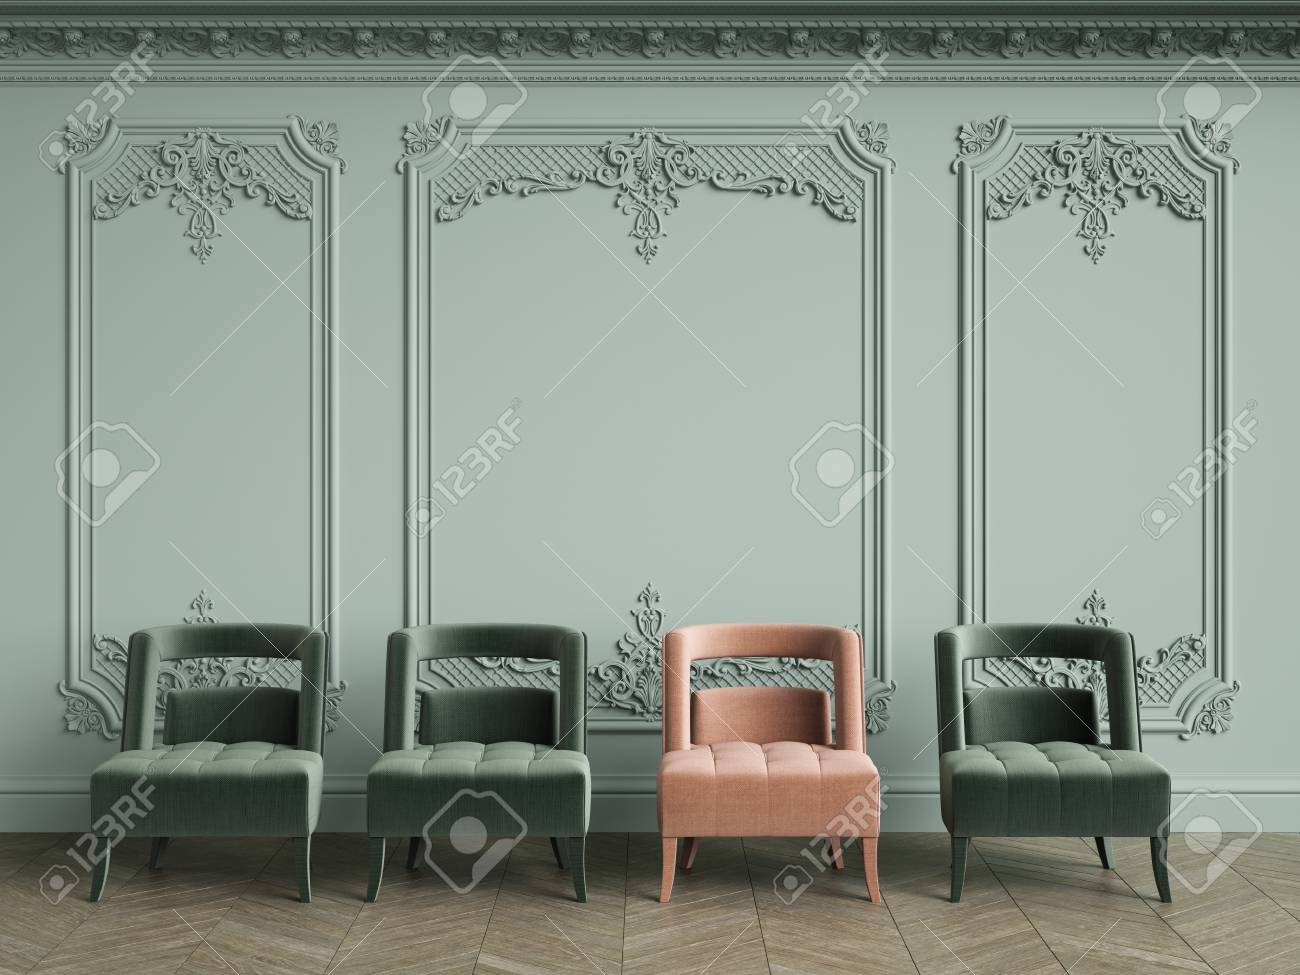 https://previews.123rf.com/images/remuhin/remuhin1803/remuhin180300260/98044088-pink-armchair-among-green-ones-in-classic-vintage-interior-with-copy-space-pale-olive-walls-with-mol.jpg